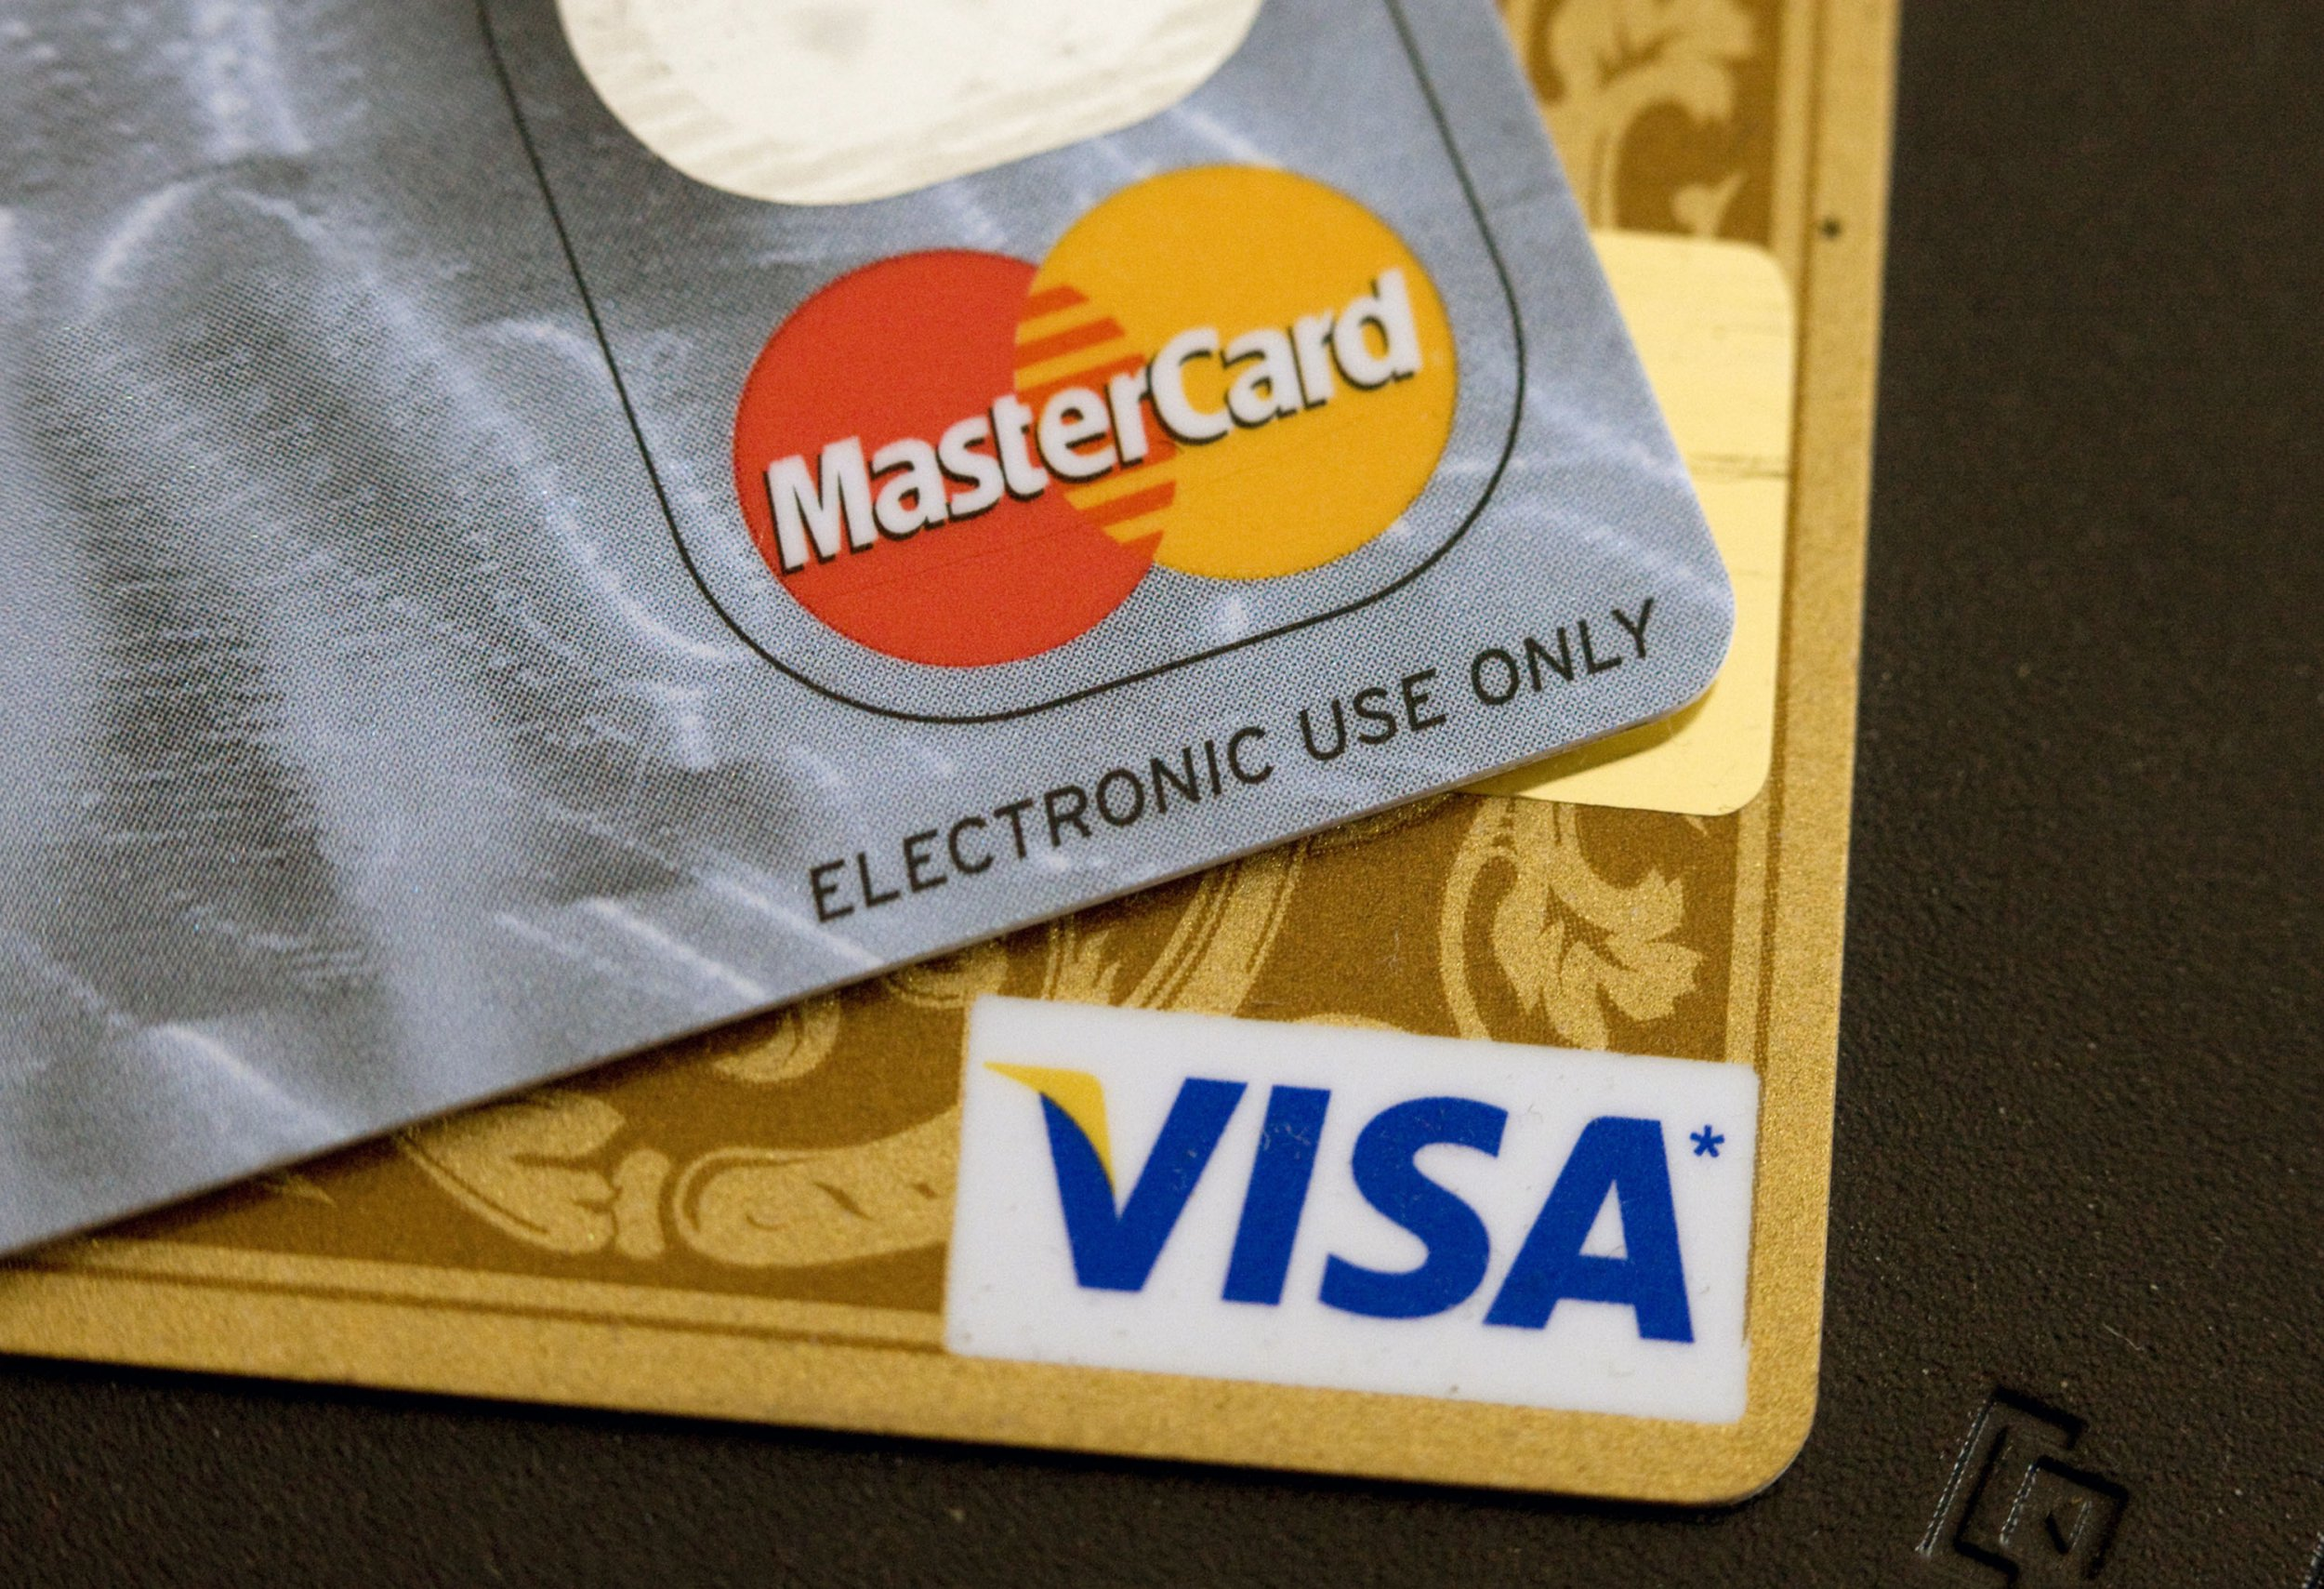 Using credit cards when you're abroad is about to get cheaper